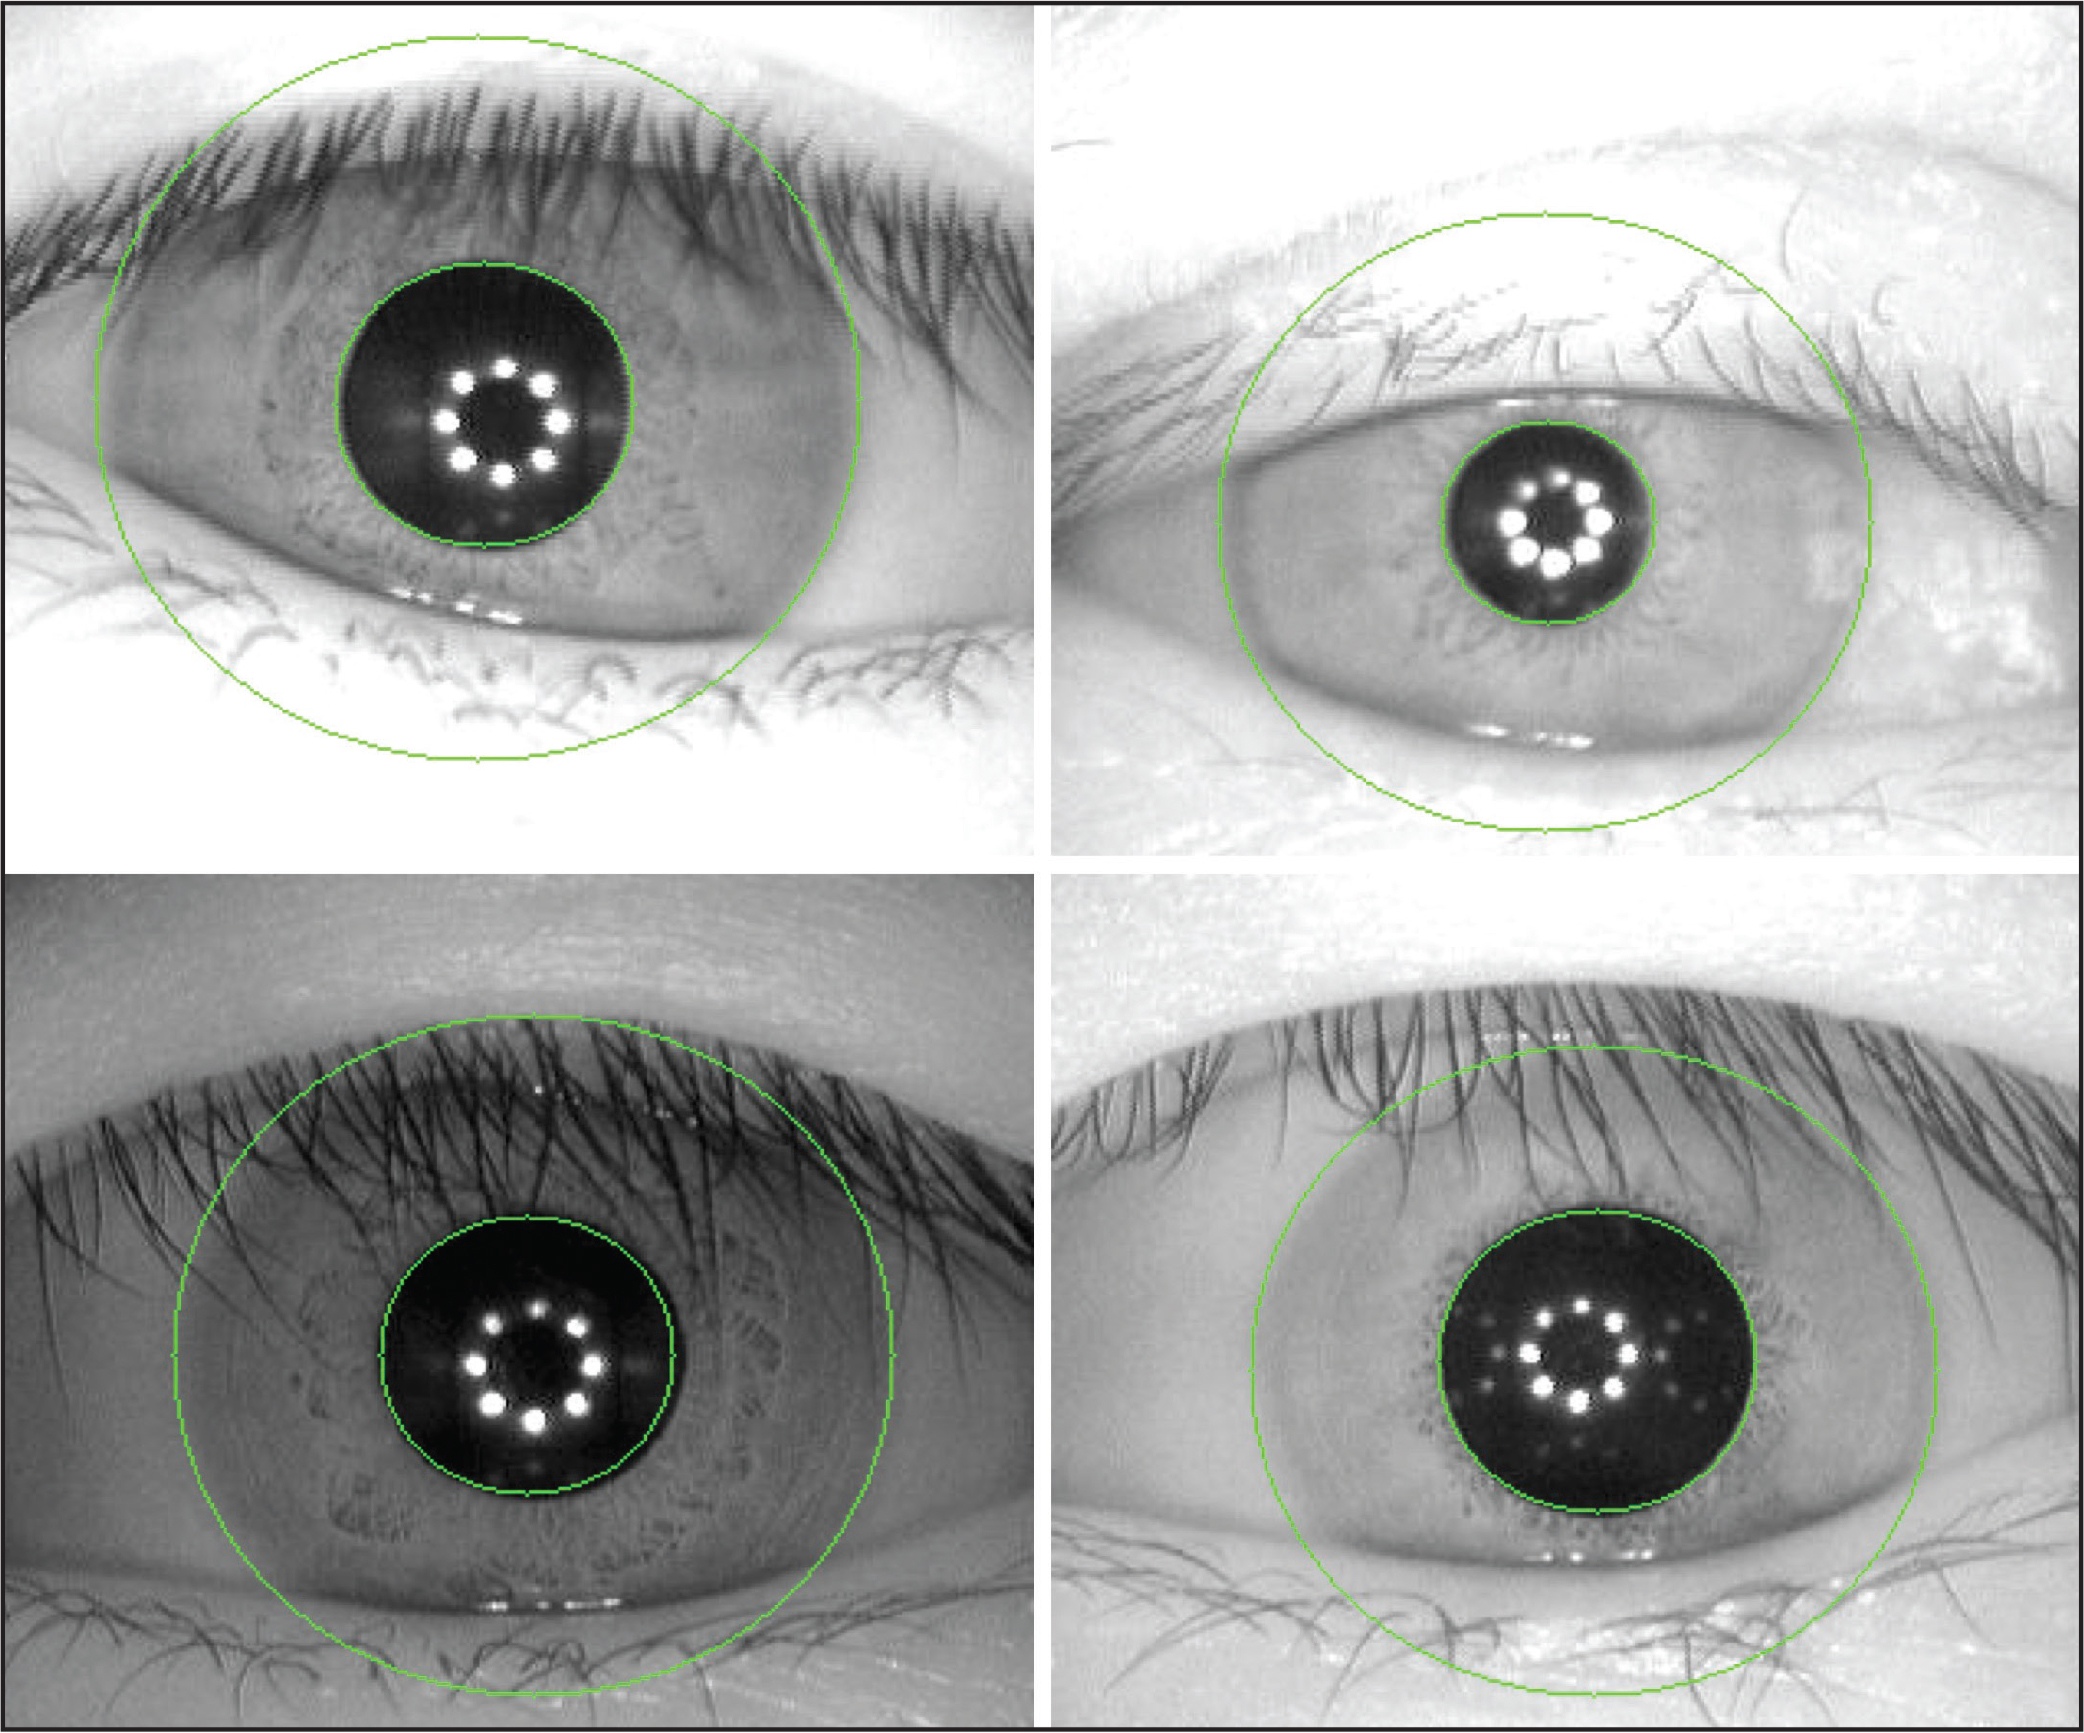 Four examples of successful iris segmentation under demanding conditions, such as eyelash and eyelid occlusions and changing light conditions.